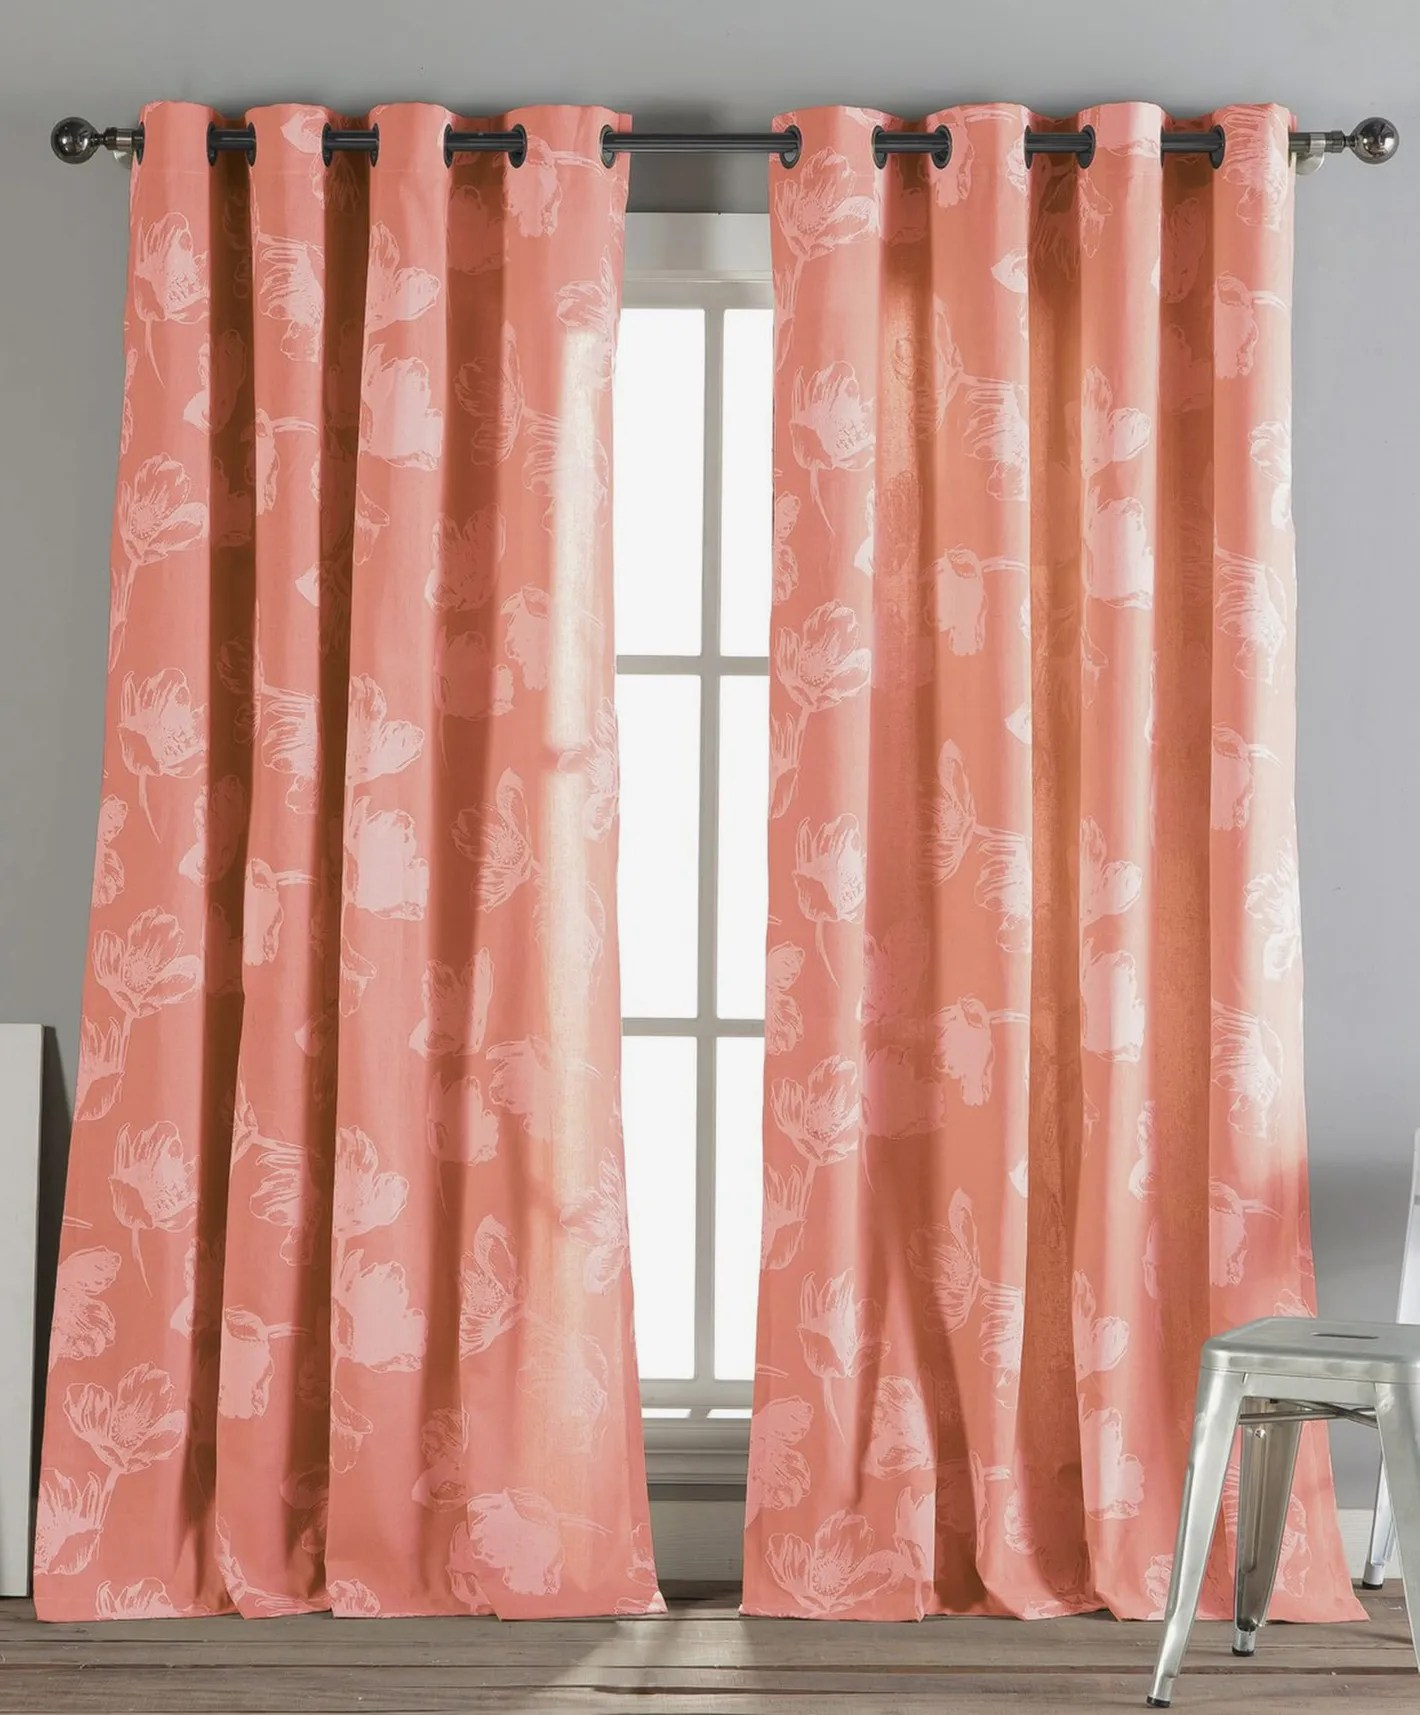 Where Can I Buy Cheap Curtains Aster Window Panels